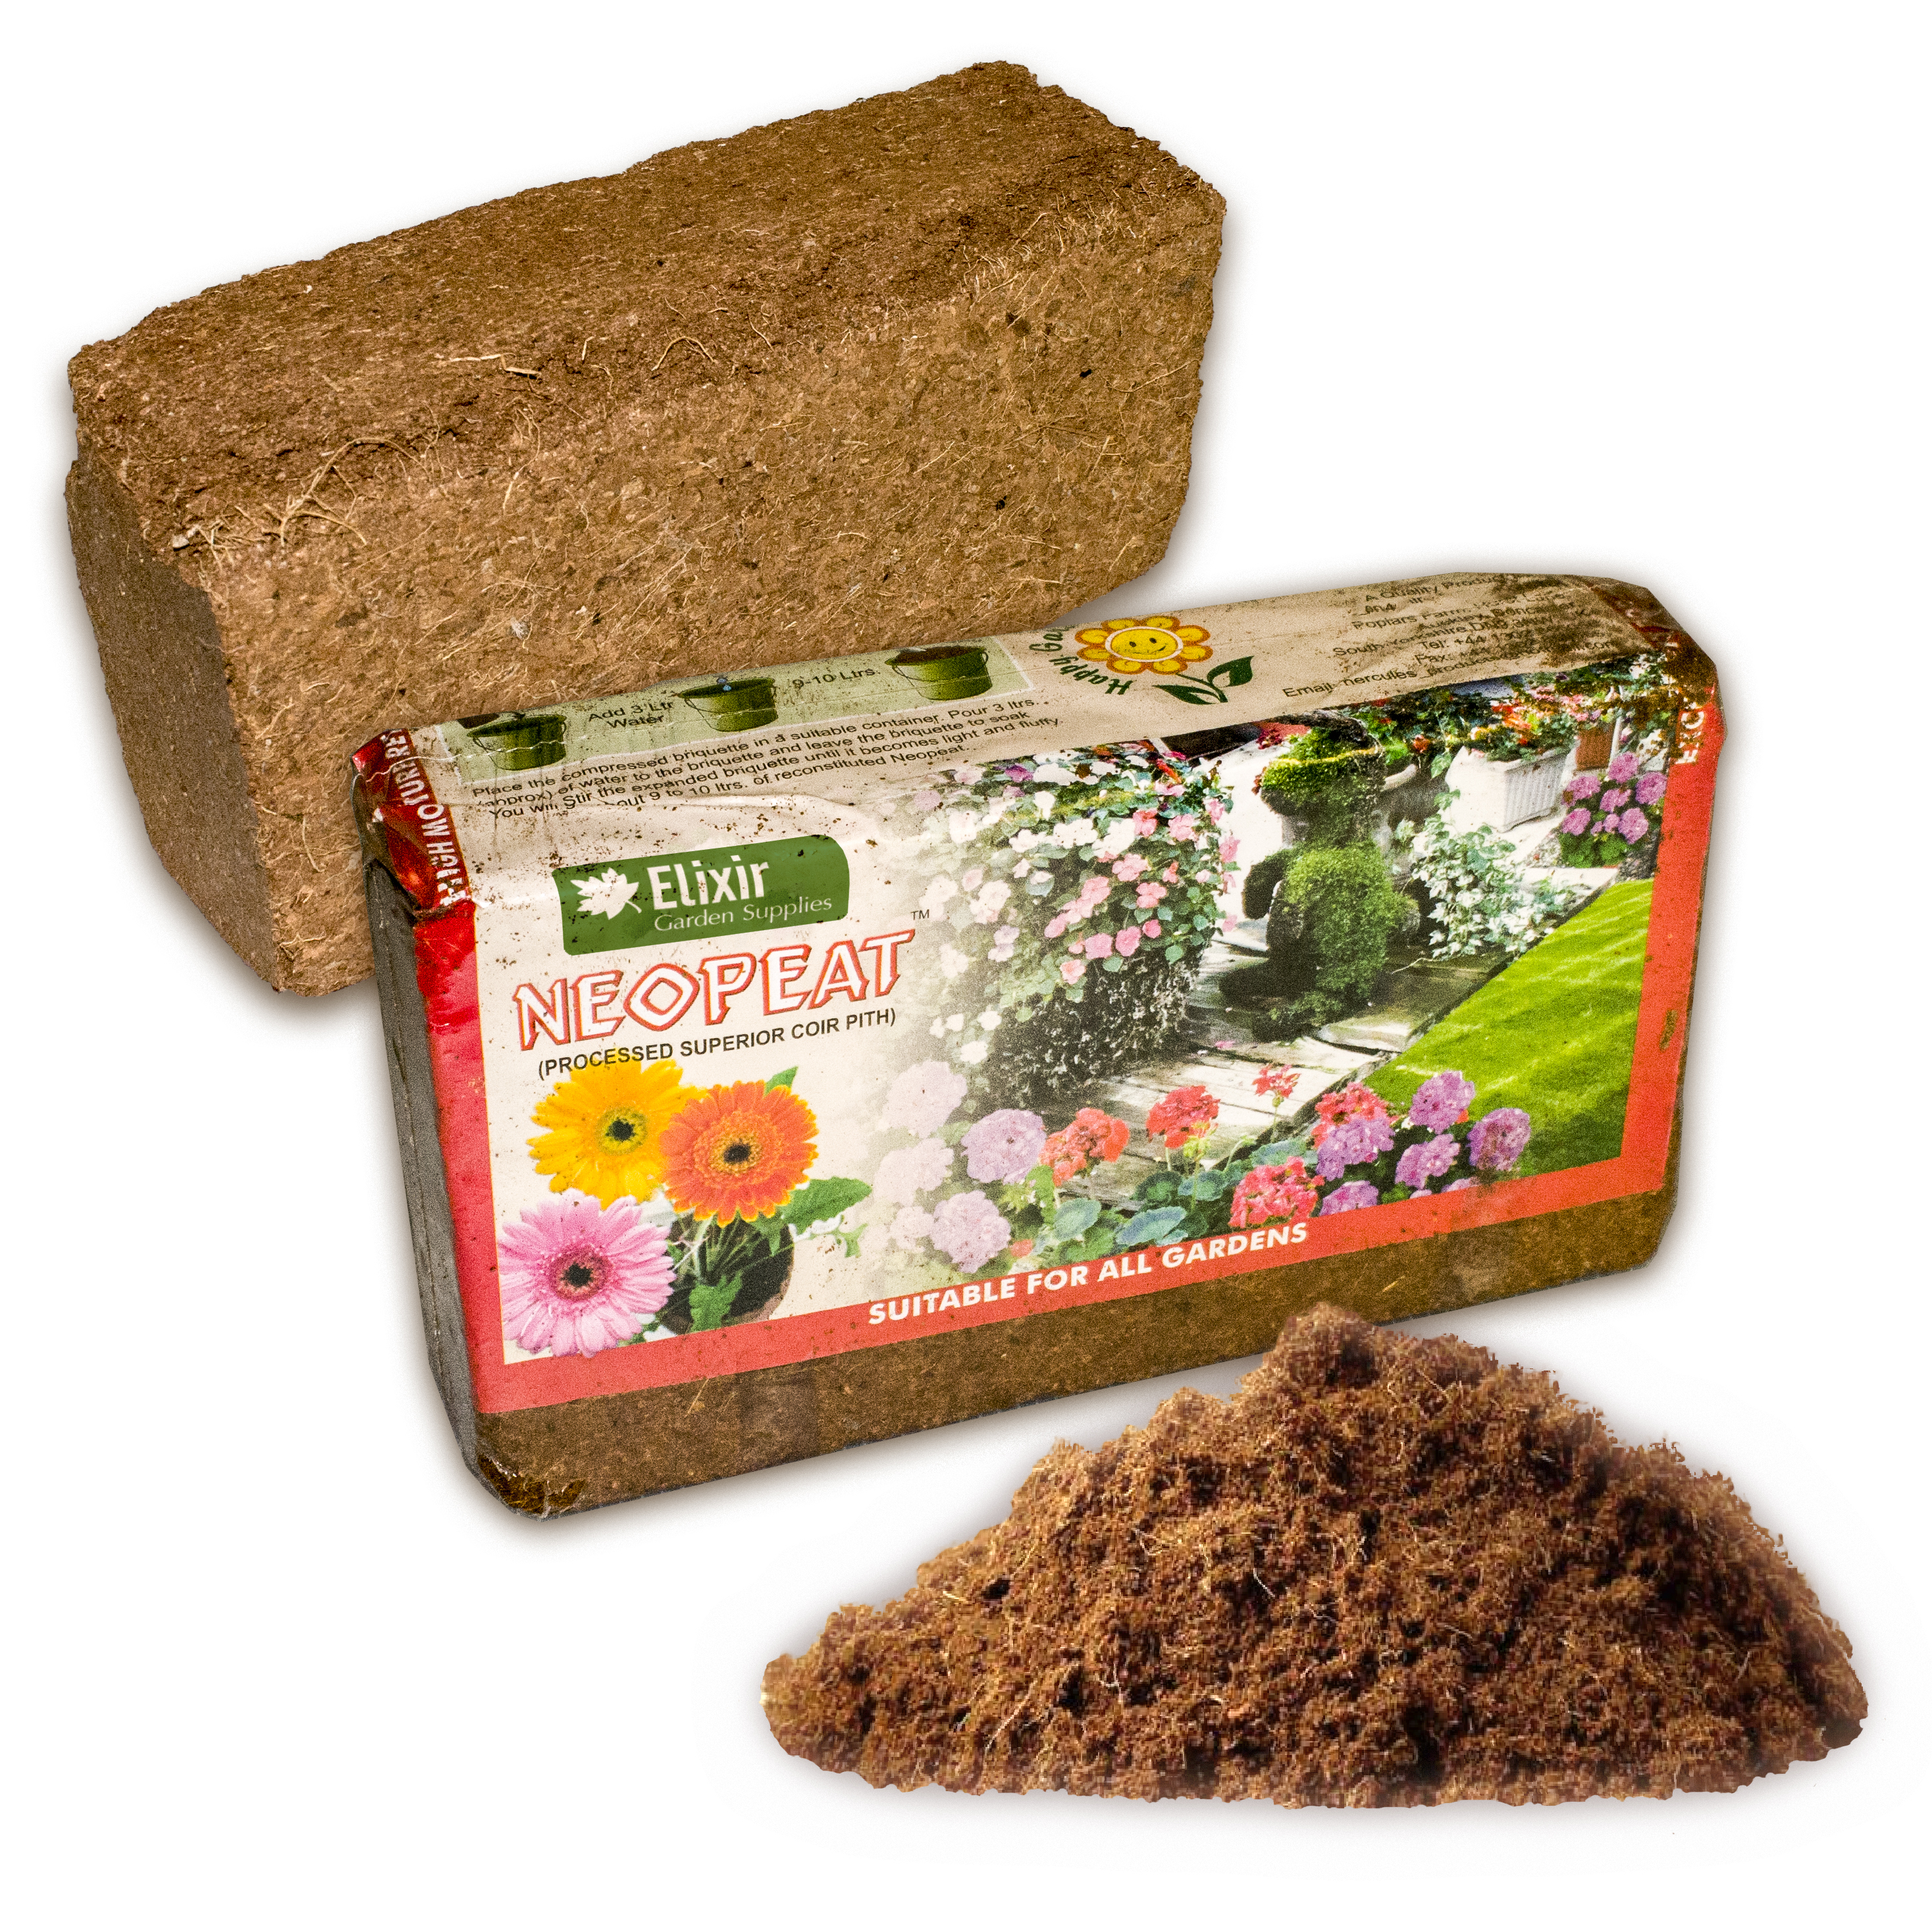 2 x Coir Compost Organic Blocks Expands to 20-22lts